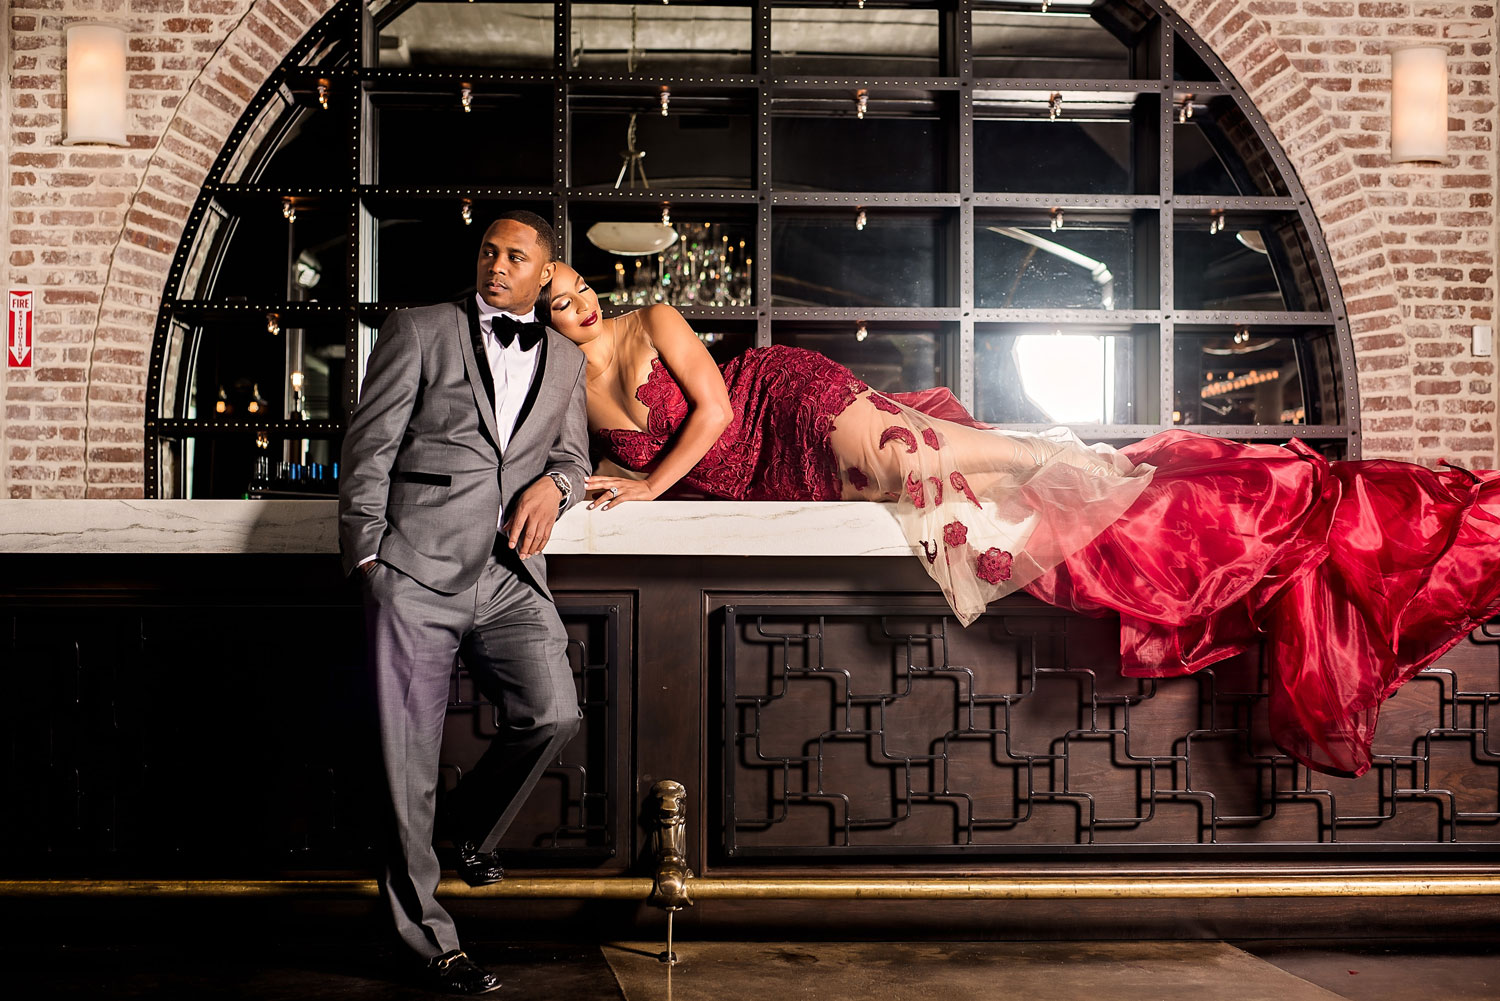 Kacey Angulo and Tony Sipp Houston Astros baseball player wedding engagement photo shoot session on bar